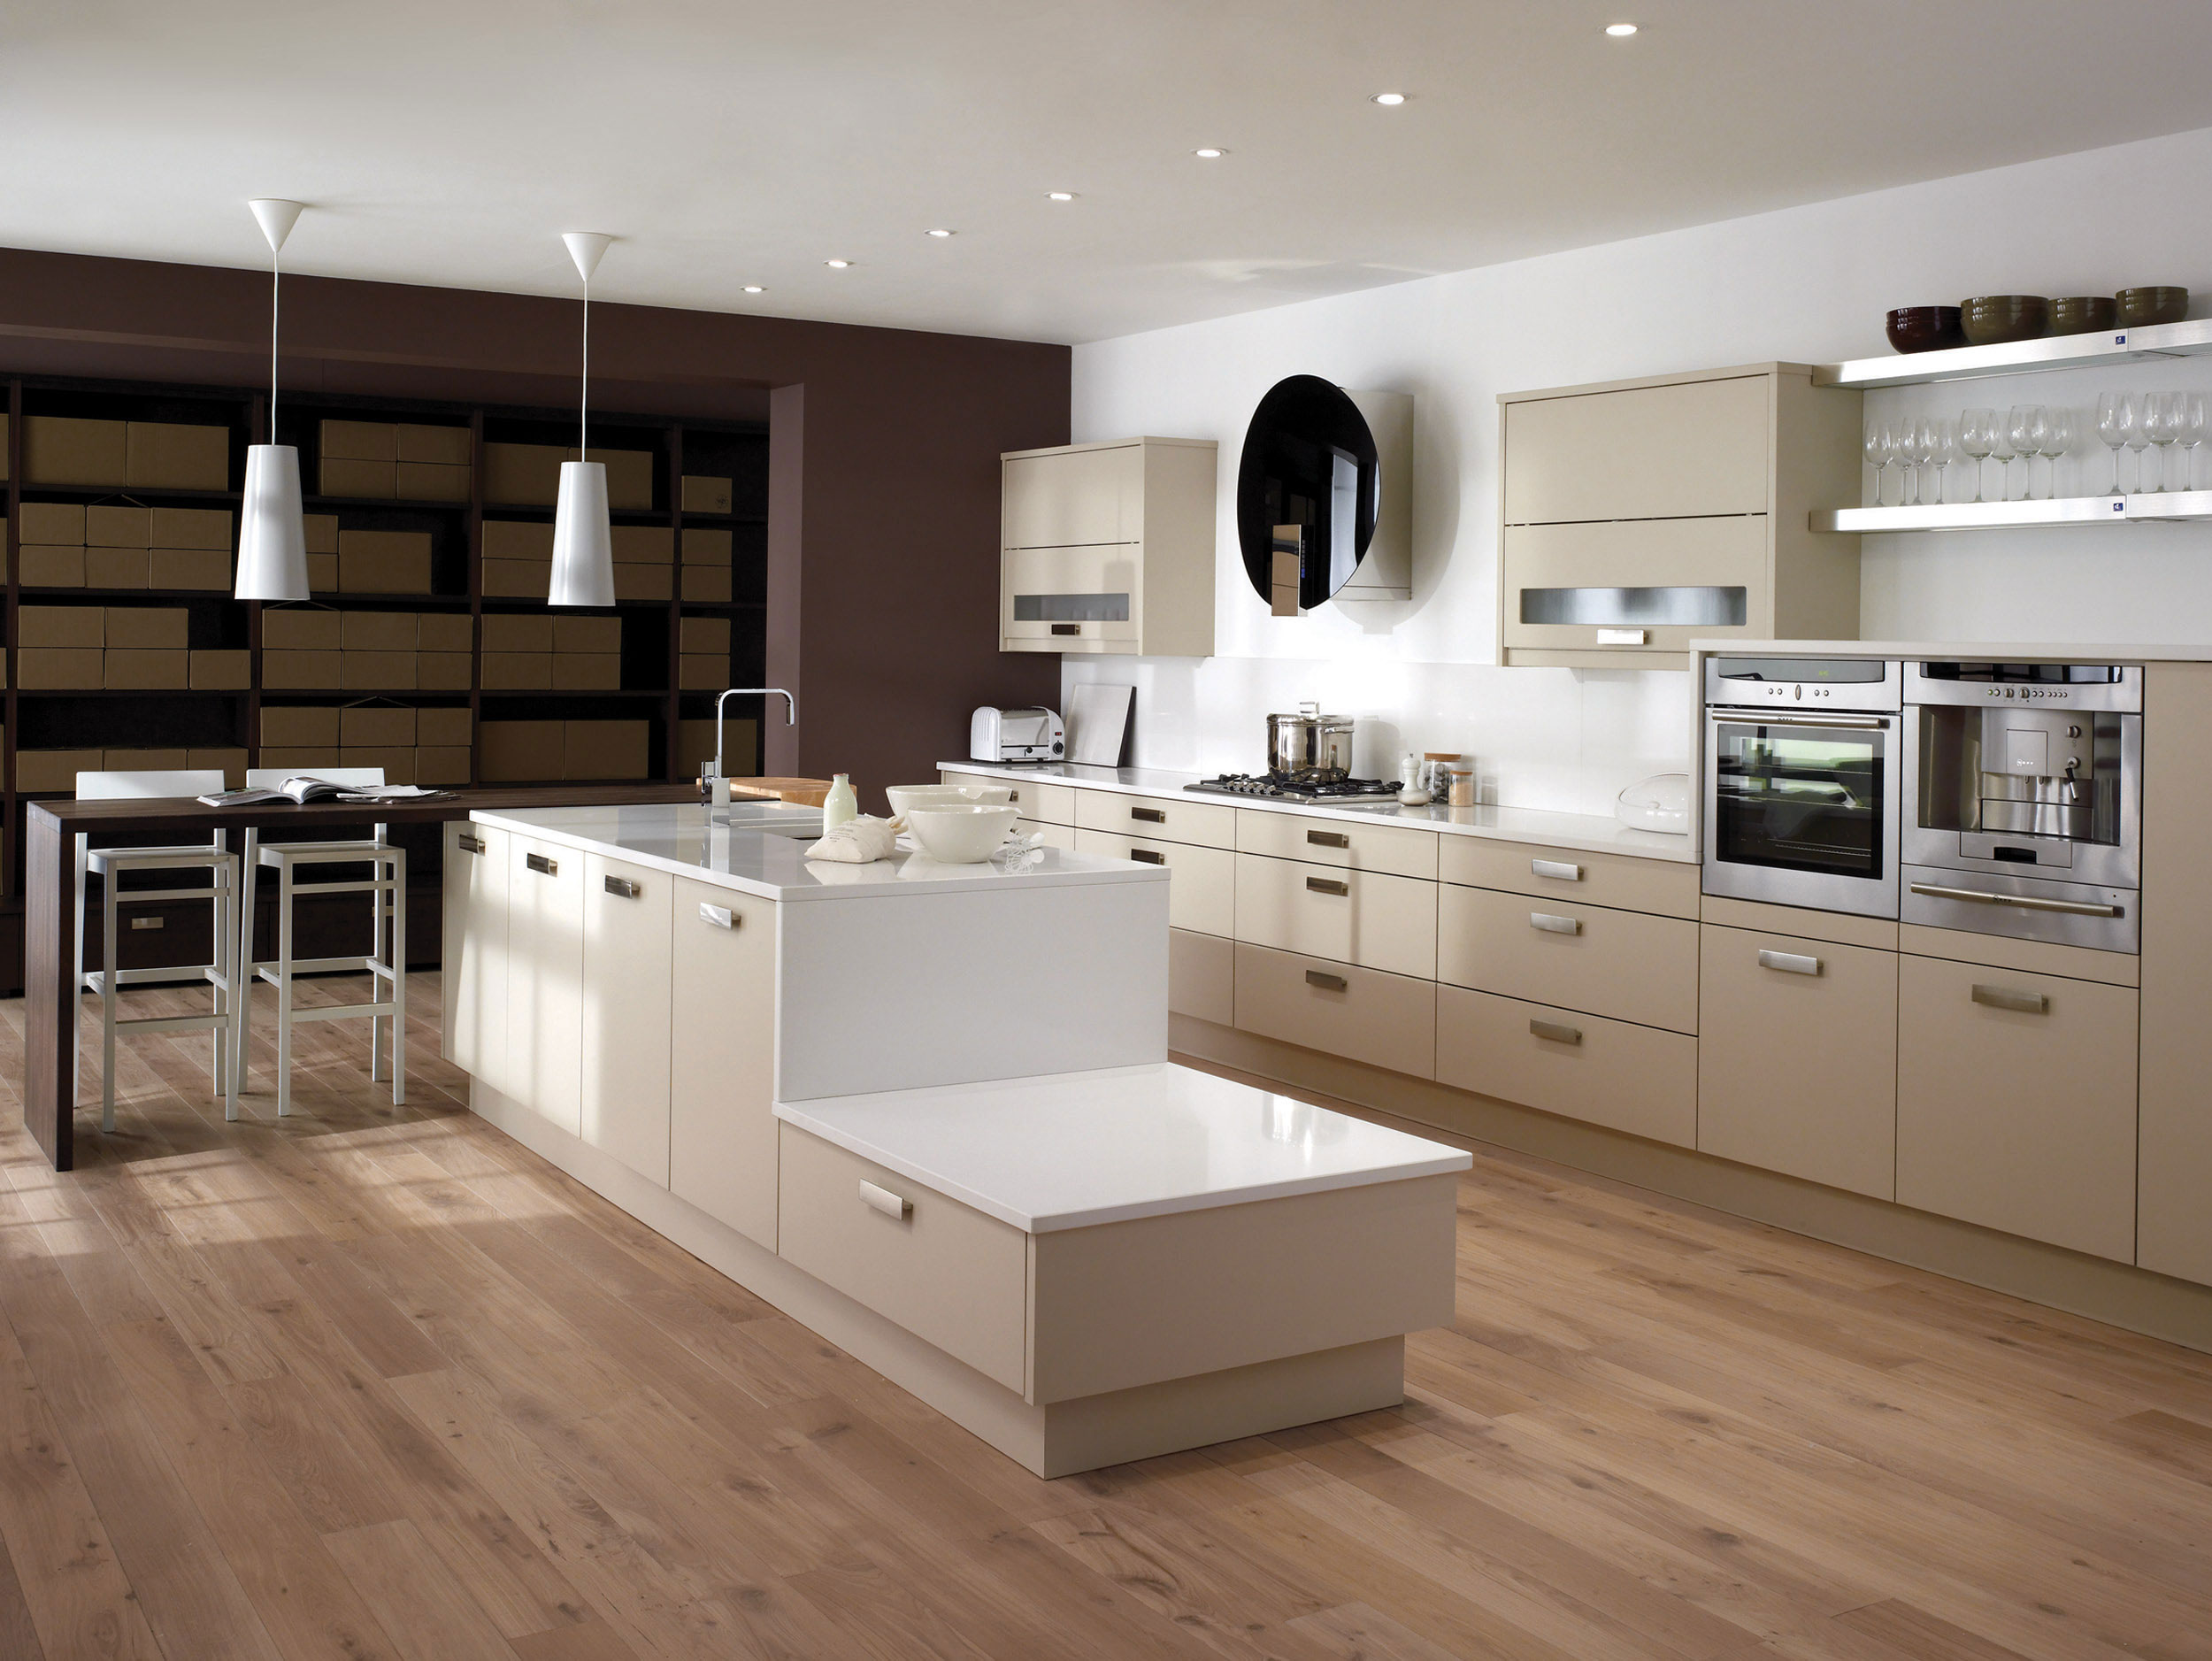 Fresco beige from eaton kitchen designs wolverhampton - Decoracion cocinas modernas ...